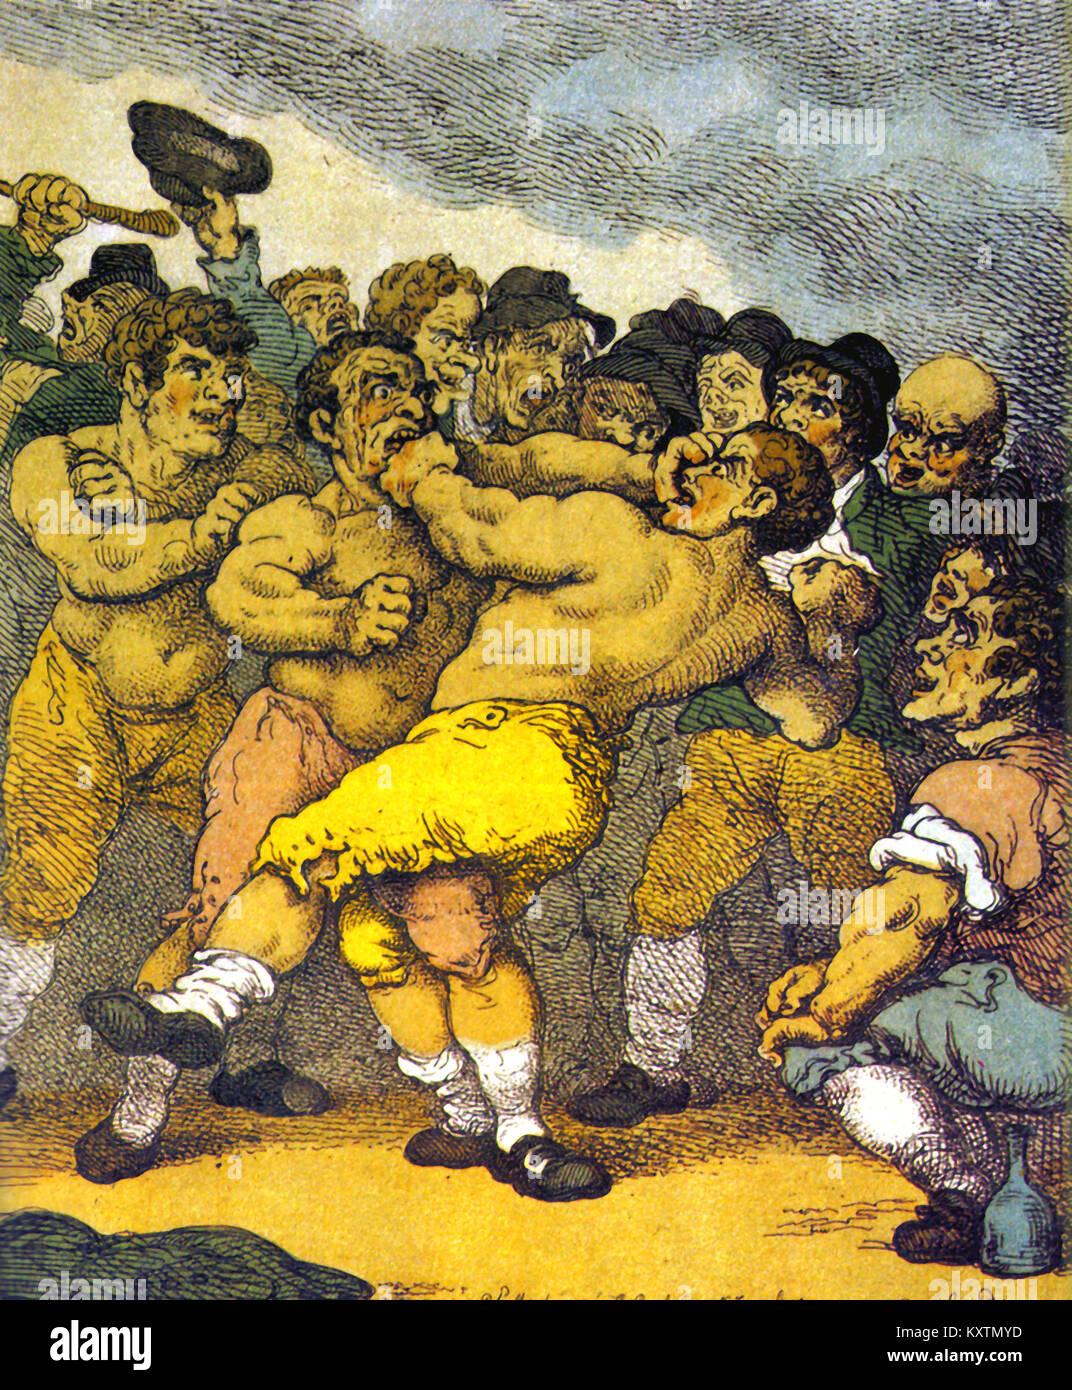 Combat Sport - British Boxing history - A bare knuckle boxing match  1811 - Stock Image